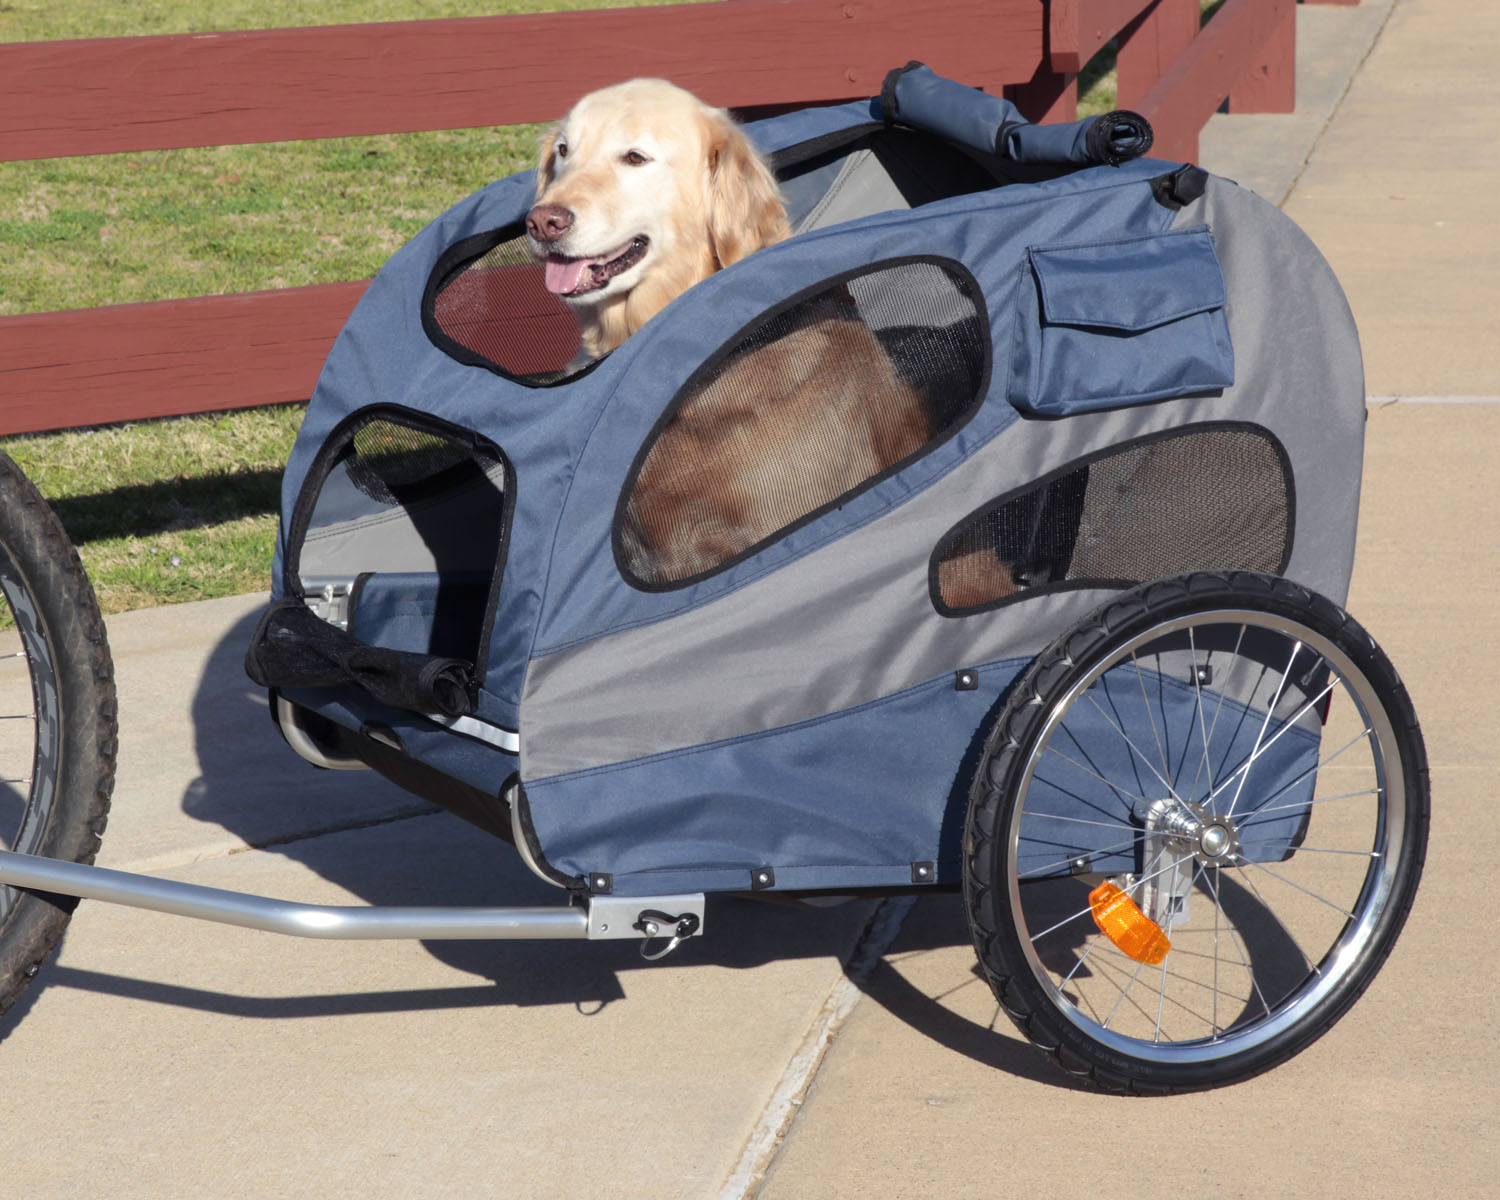 New stroller for dogs